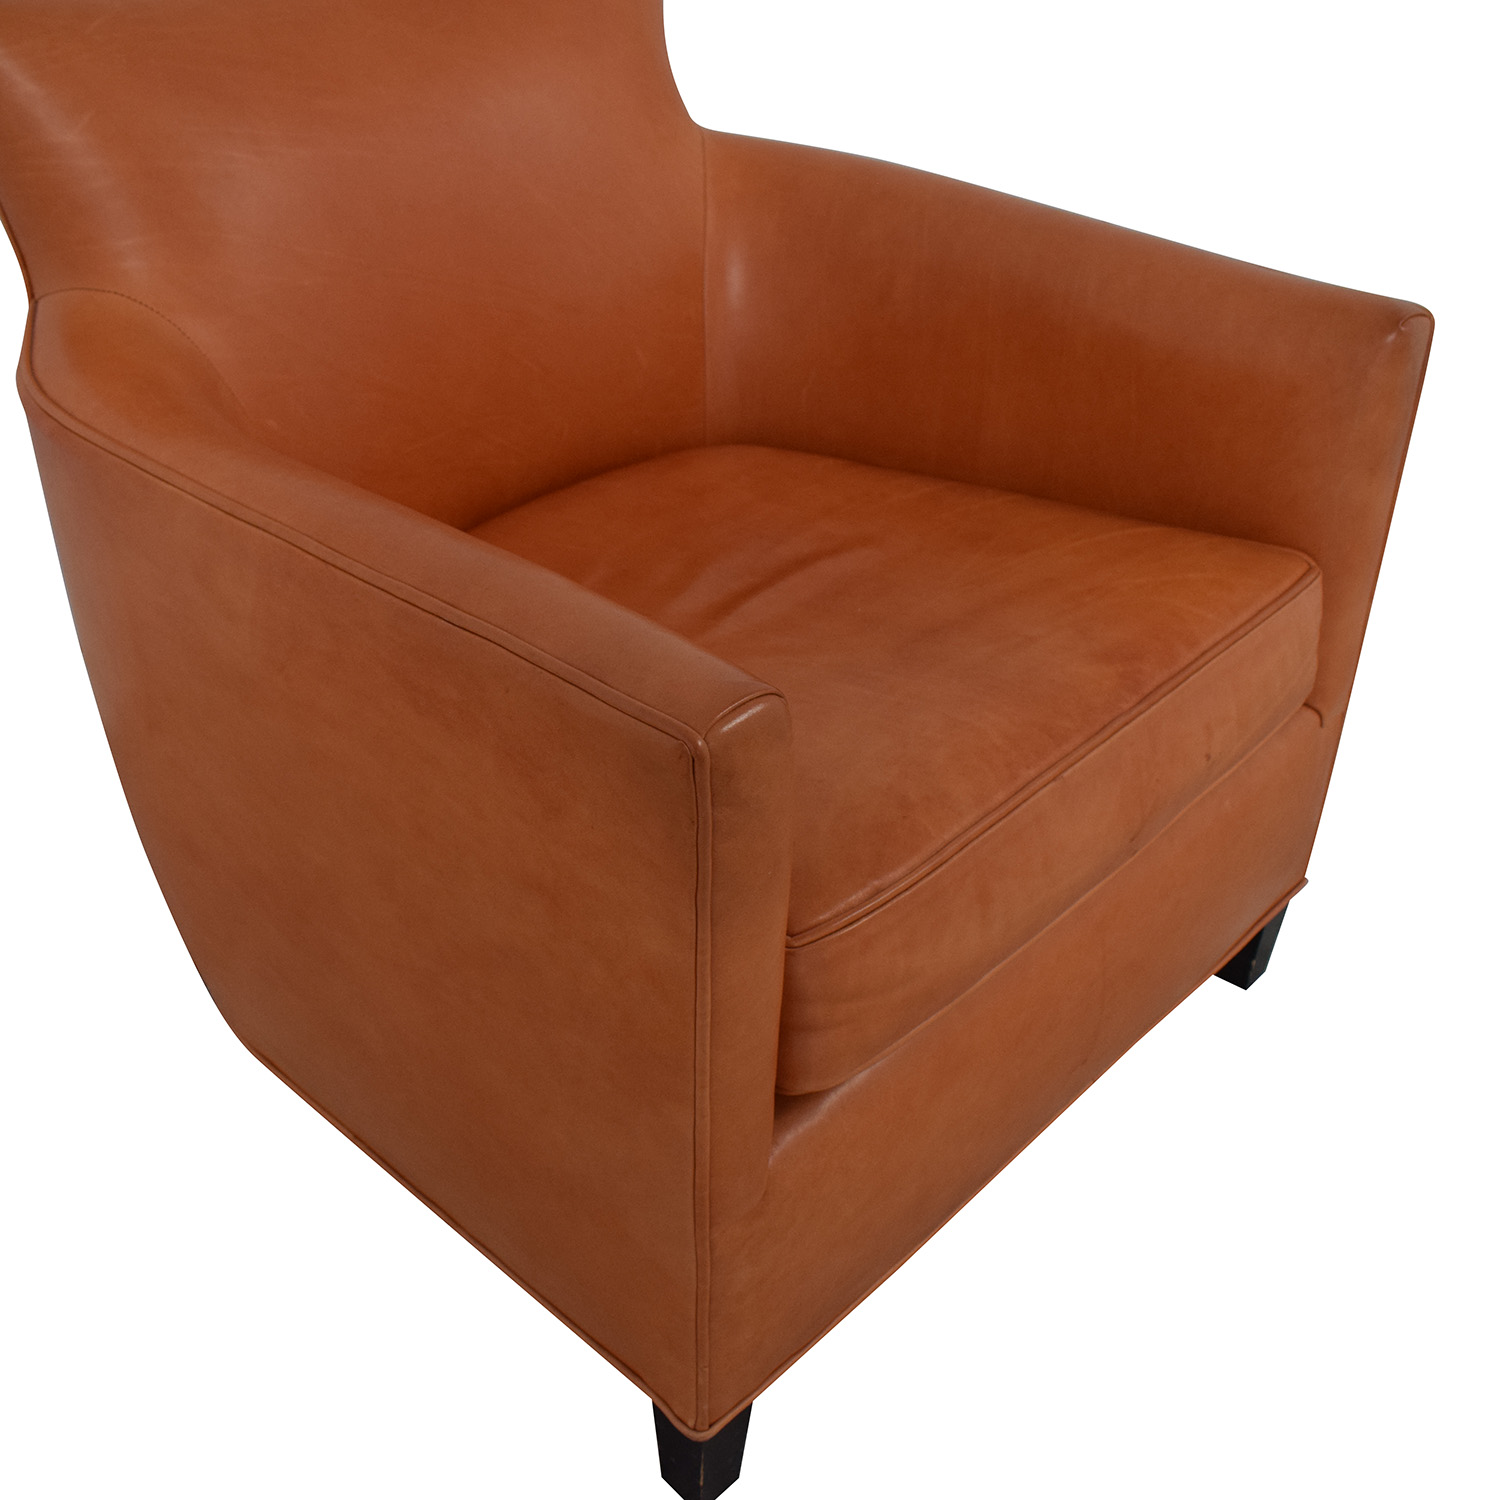 buy Crate & Barrel Orange Accent Chair Crate & Barrel Chairs